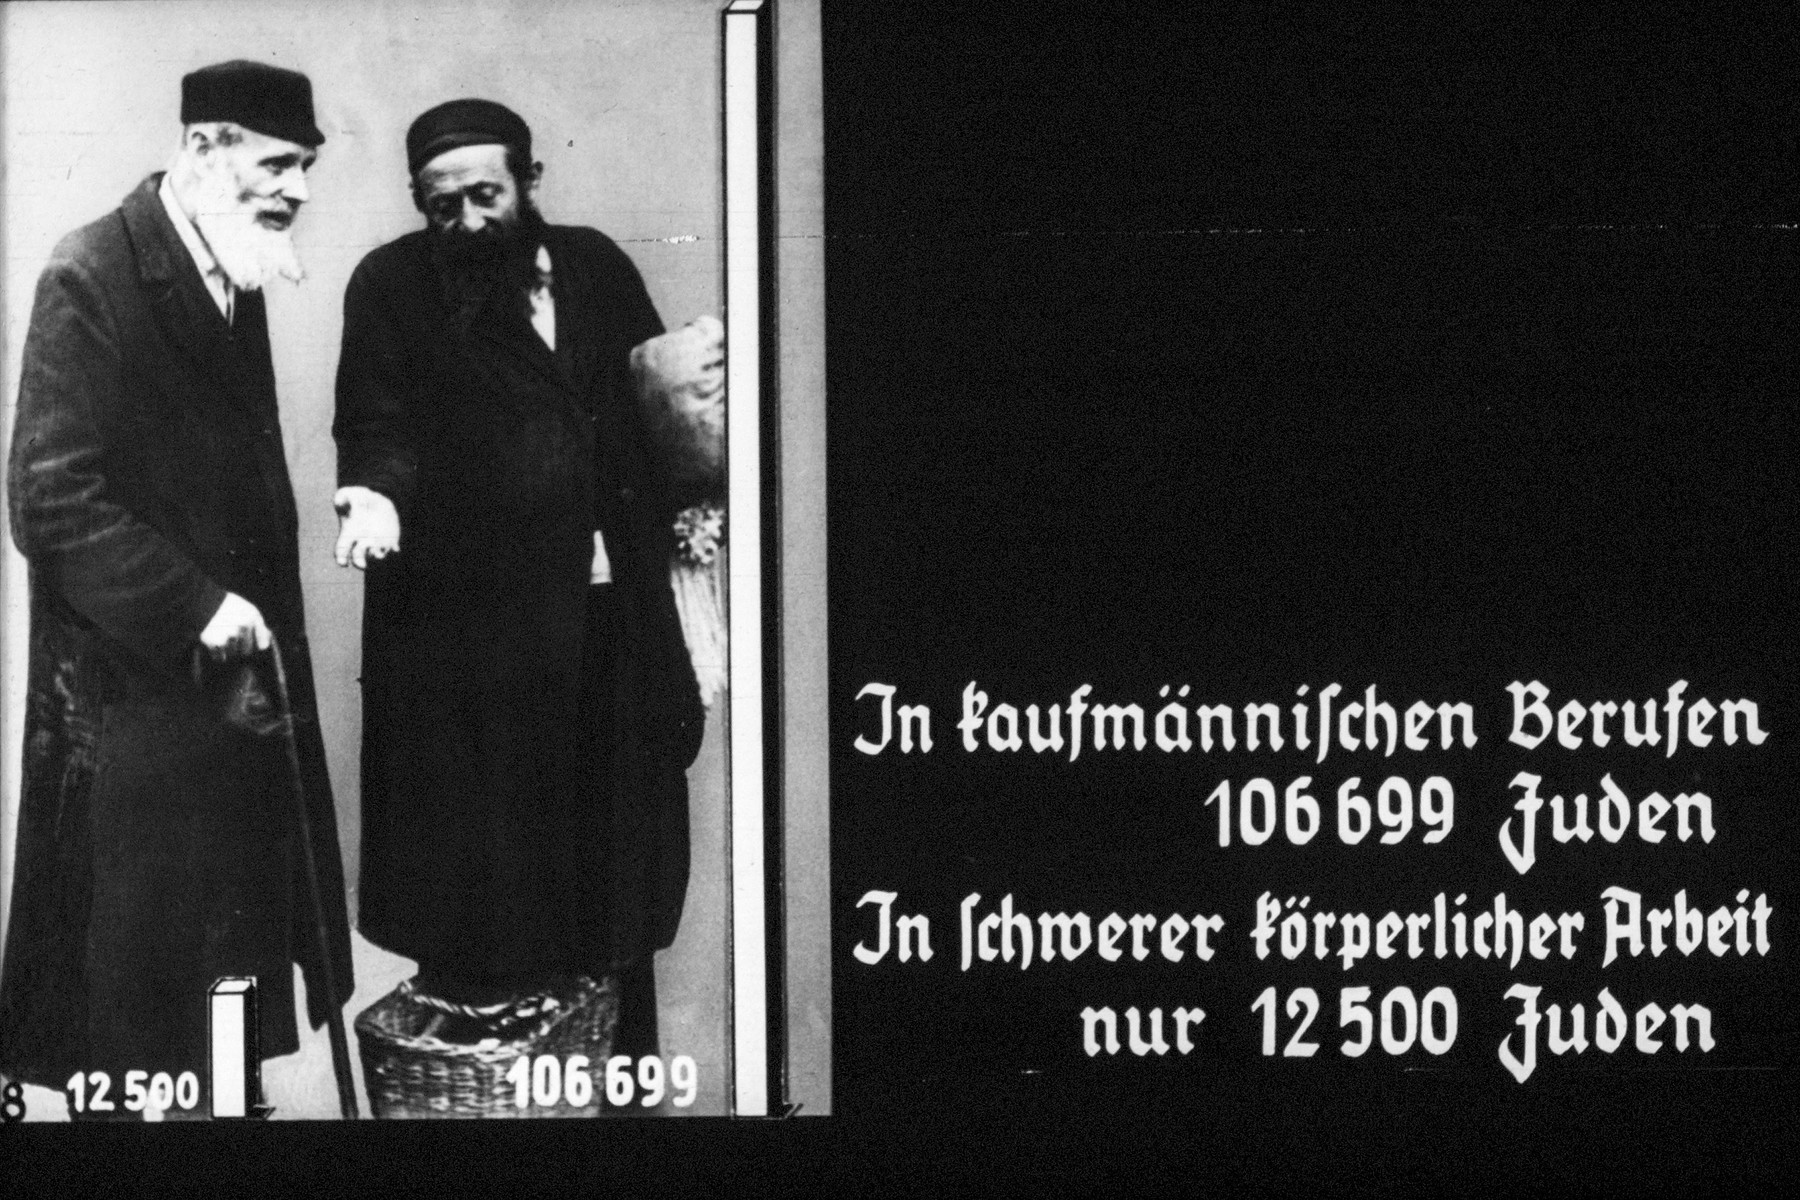 "8th Nazi propaganda slide of a Hitler Youth educational presentation entitled ""Germany Overcomes Jewry.""  In kaufmännischen Berufen 106699 Juden/ In schwerer körperlicher Arbeit nur 1200 Juden // In the business sector 106,699 Jews/ In heavy physical work only 1,200 Jews"